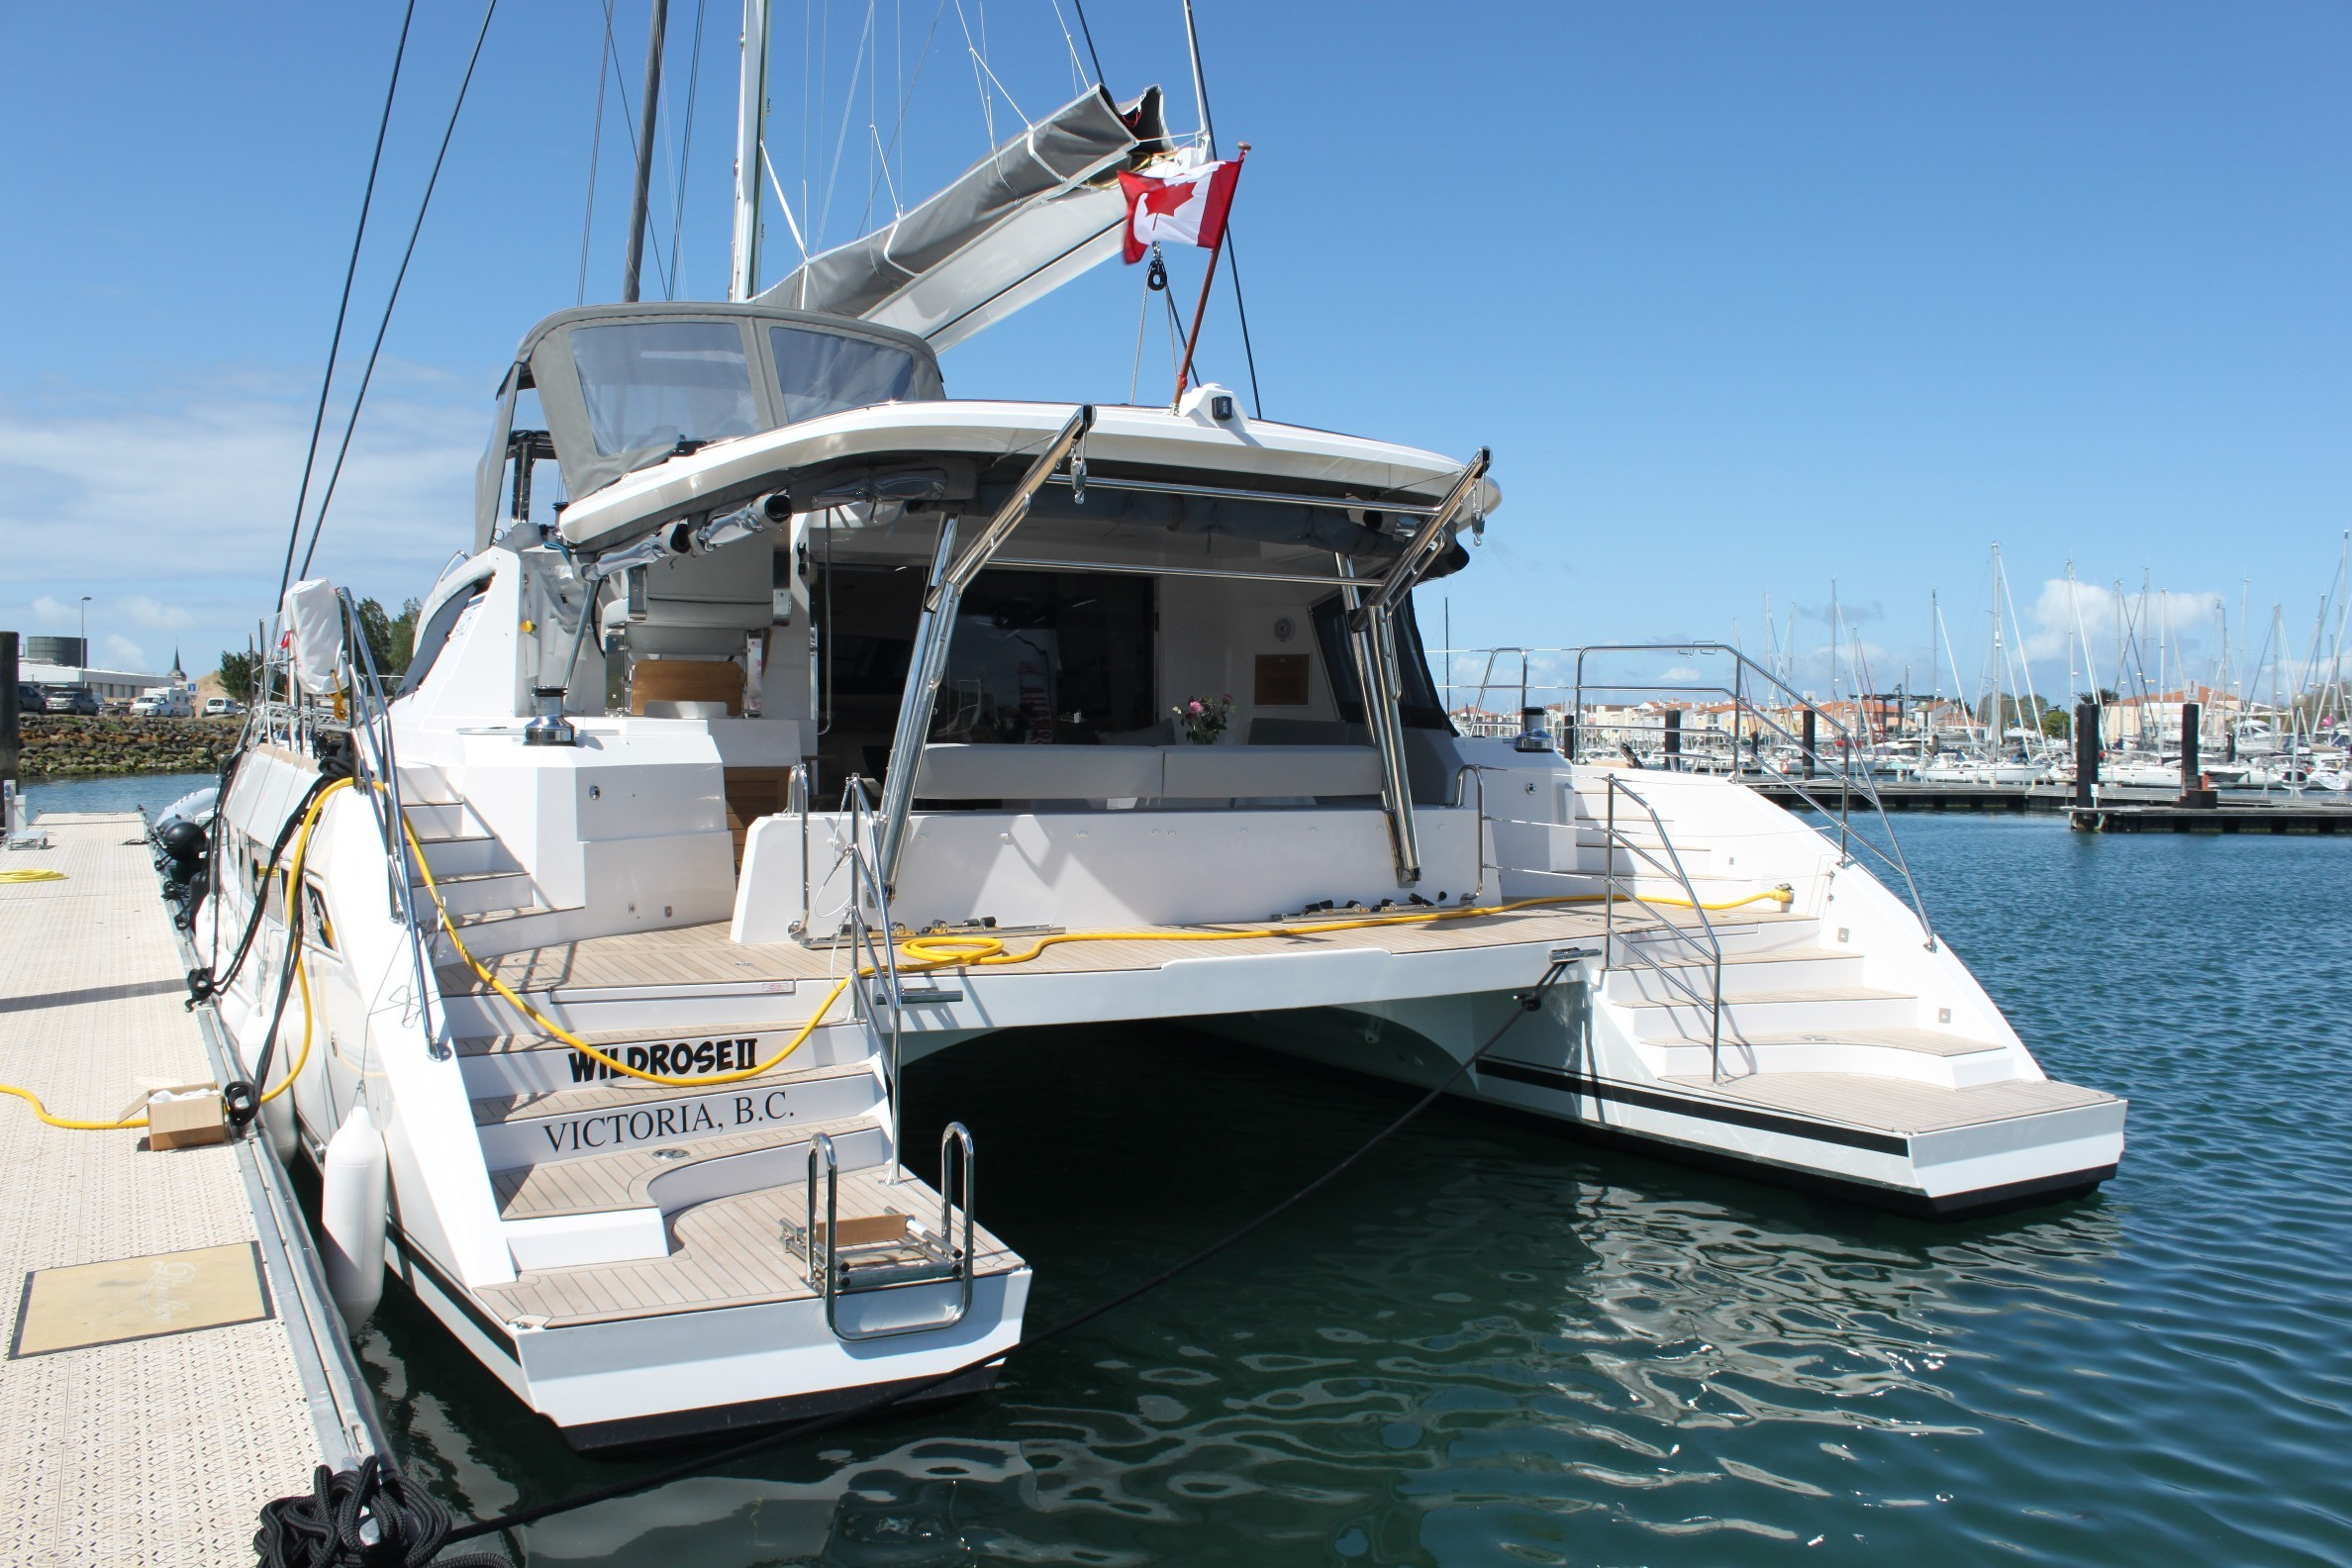 Used Sail Catamaran for Sale 2019 Series 5 Boat Highlights